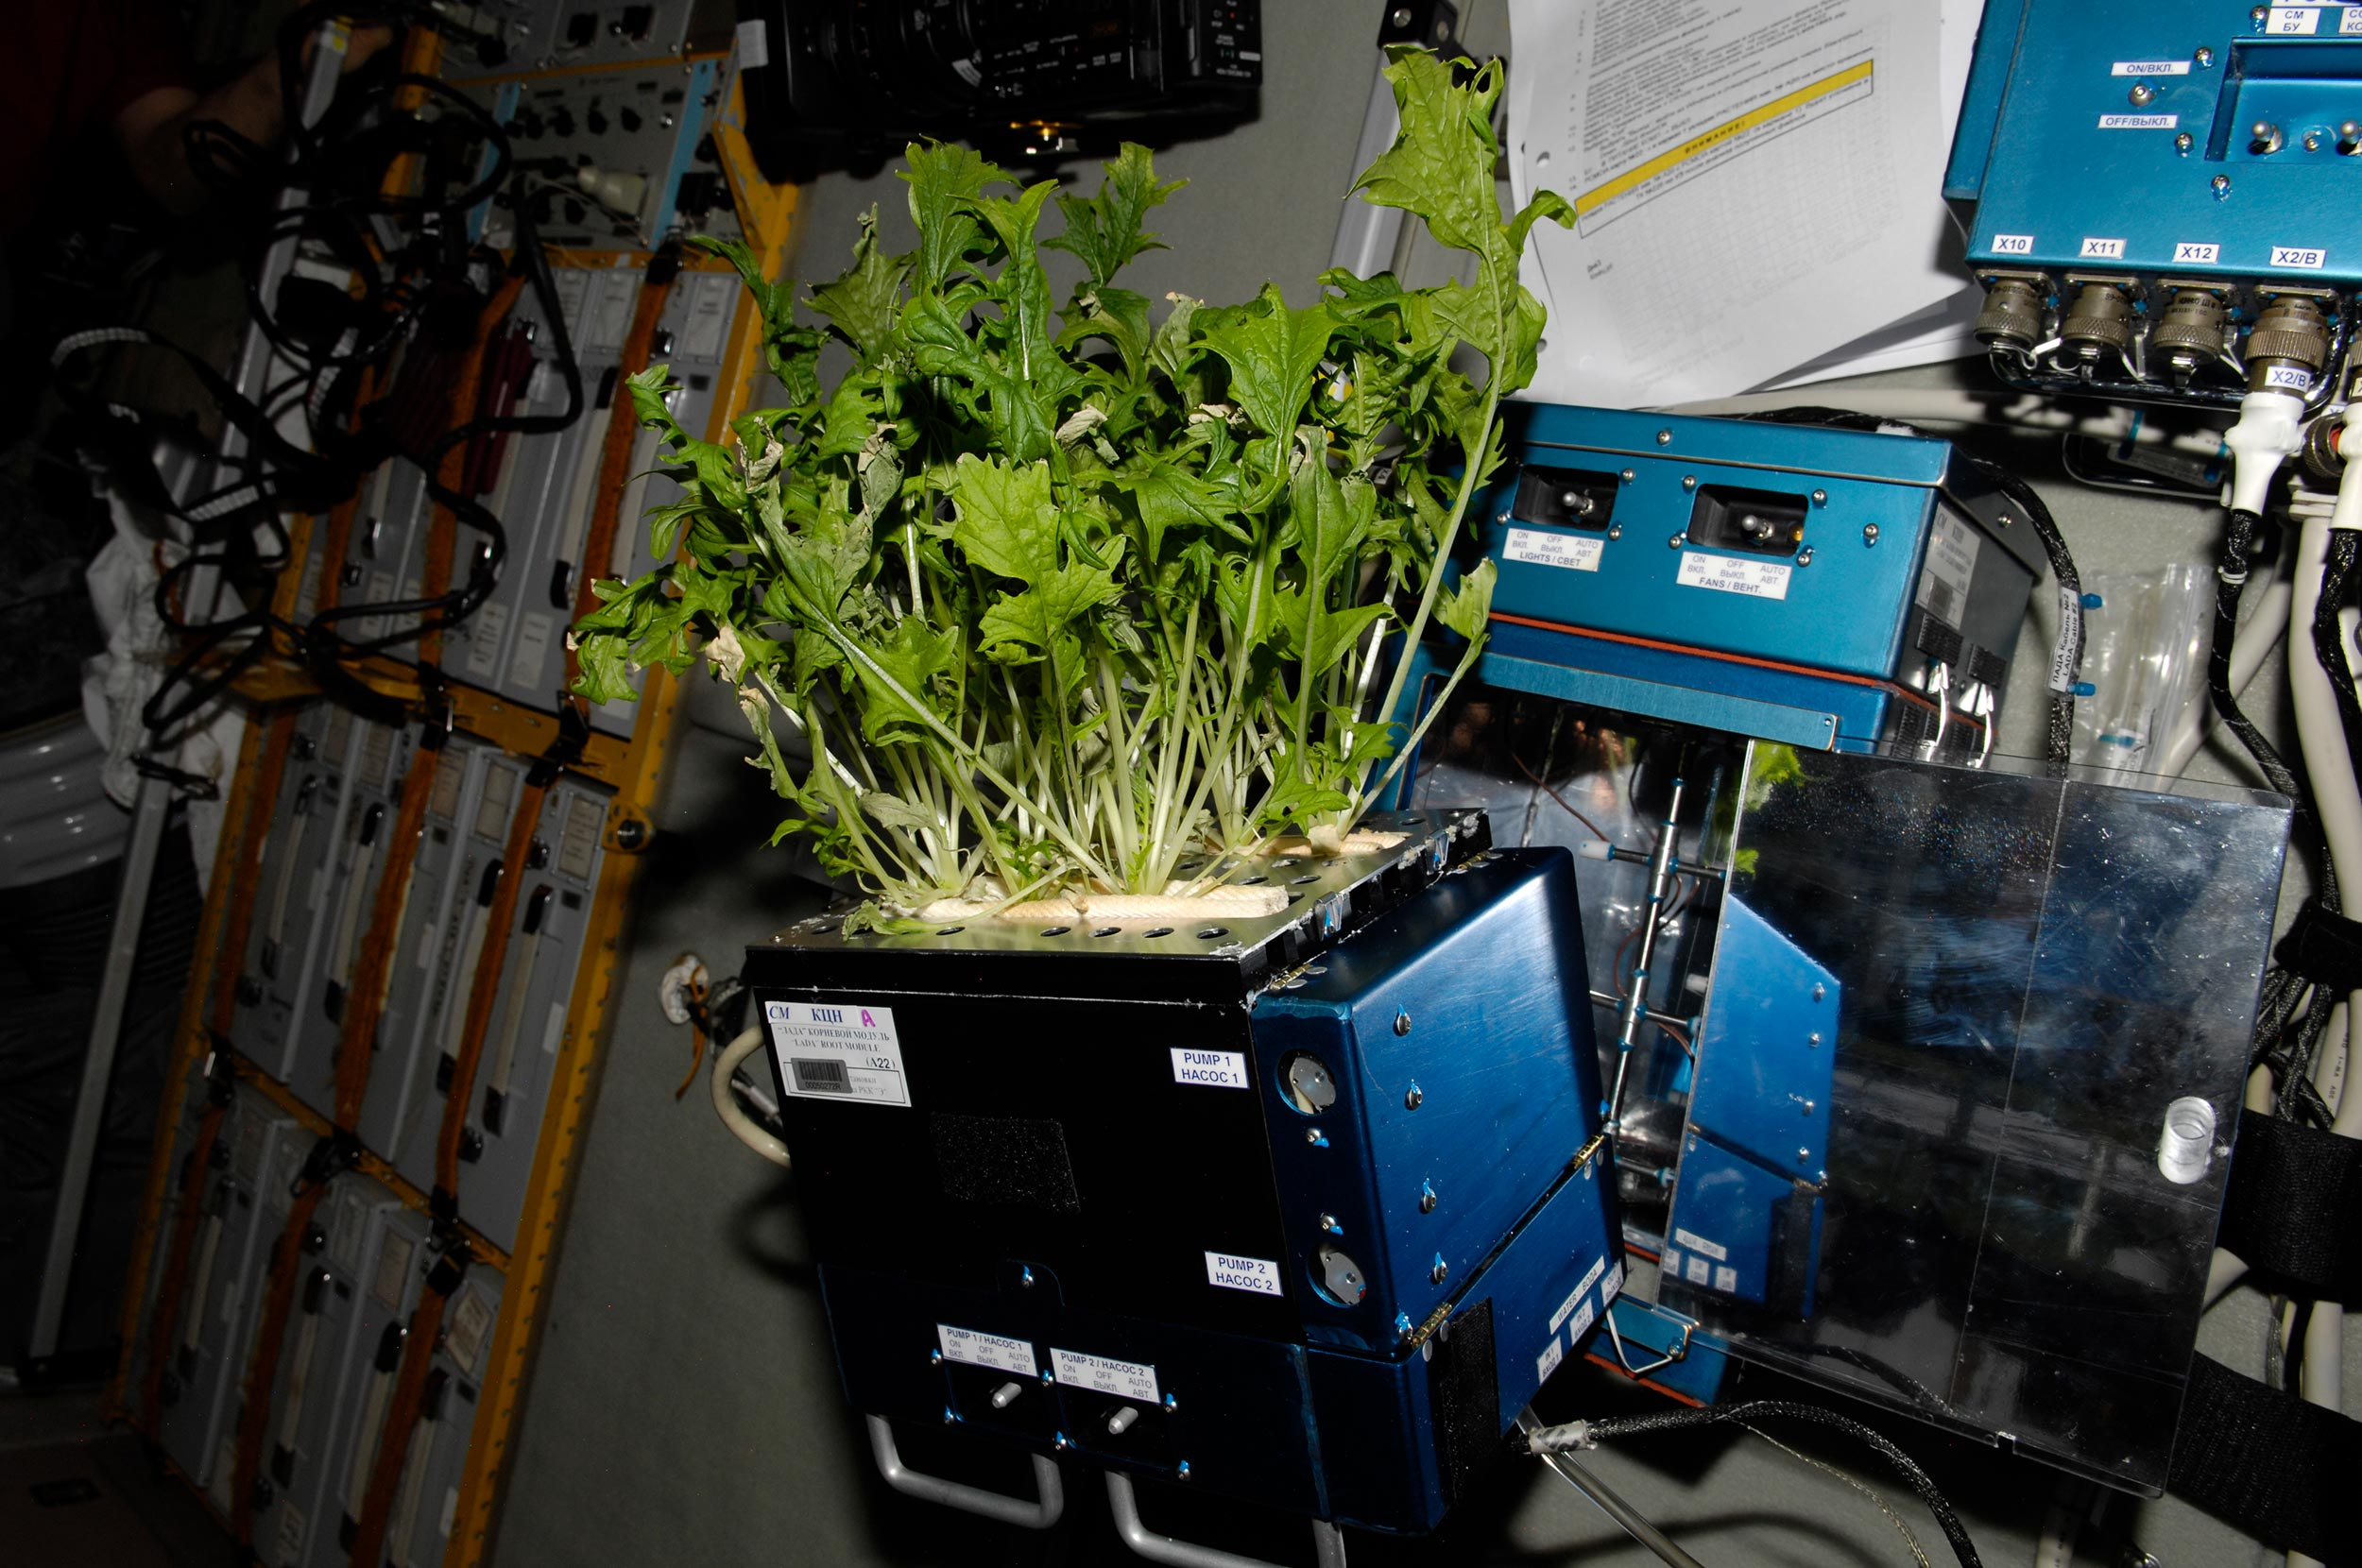 Mizuna lettuce growing aboard the International Space Station Photo:  NASA